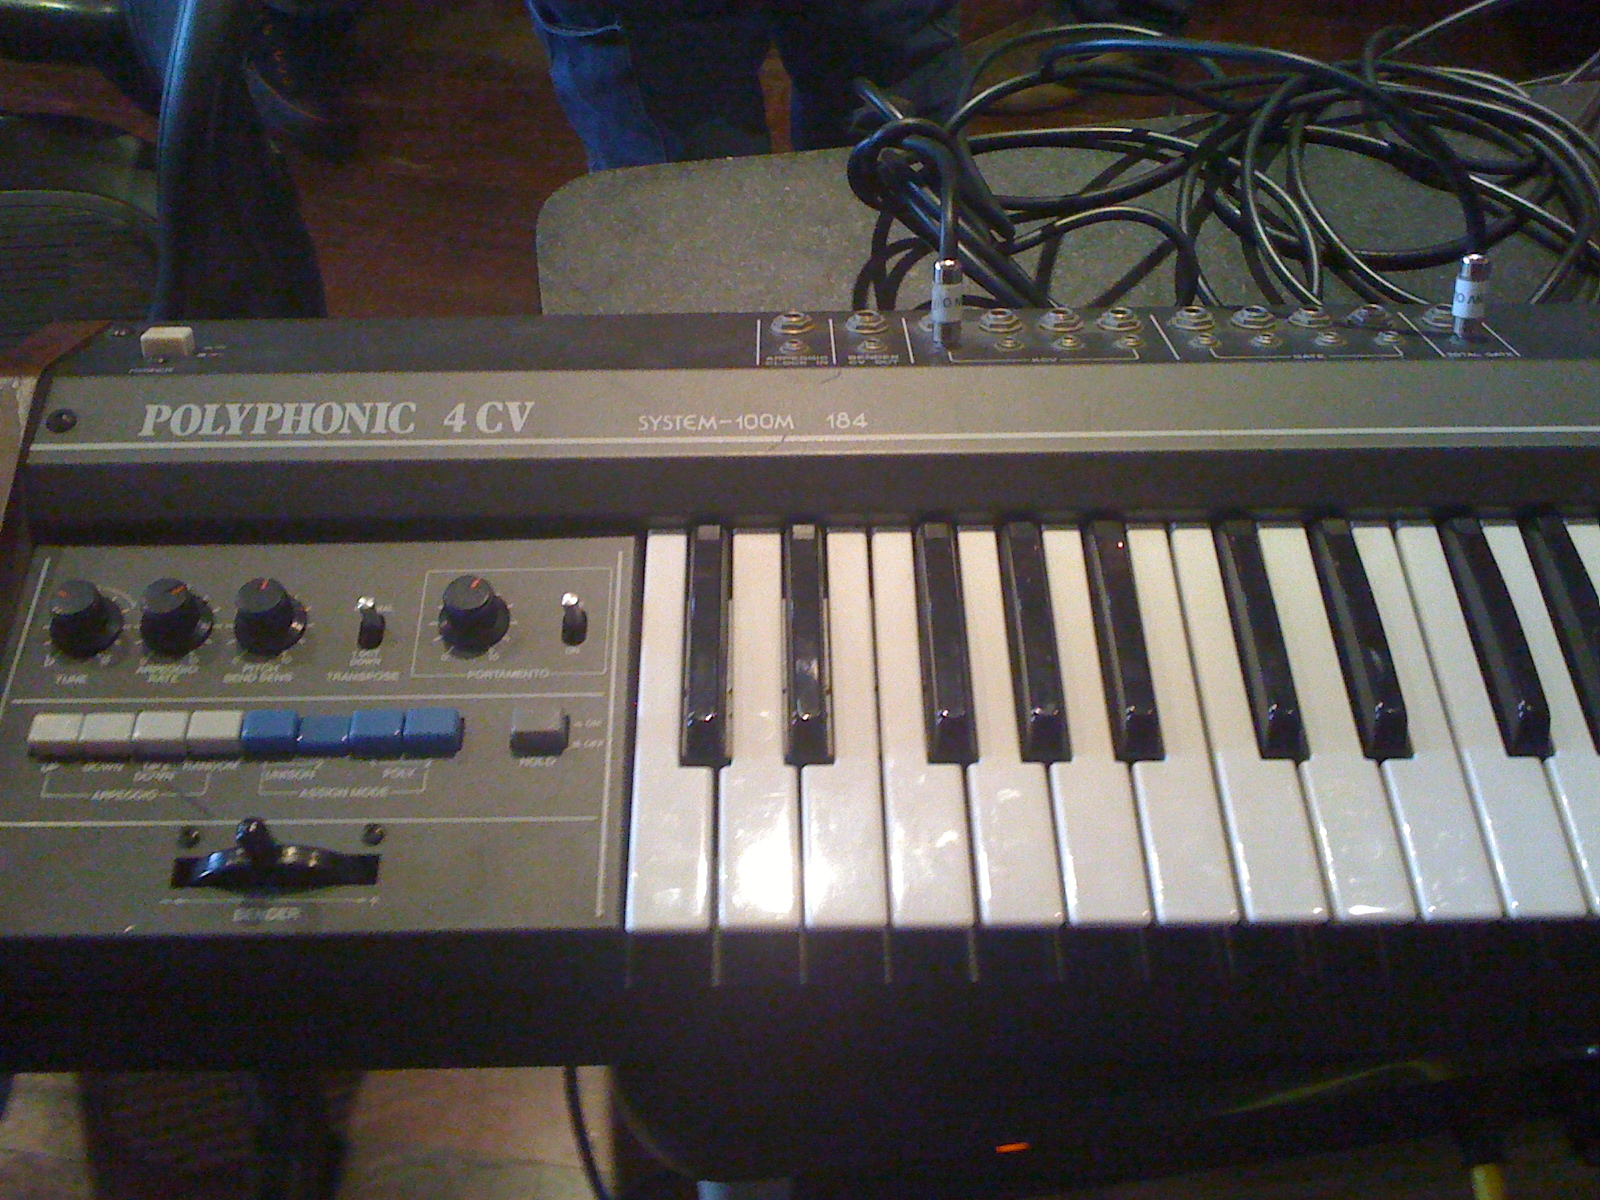 Polyphonic synth!